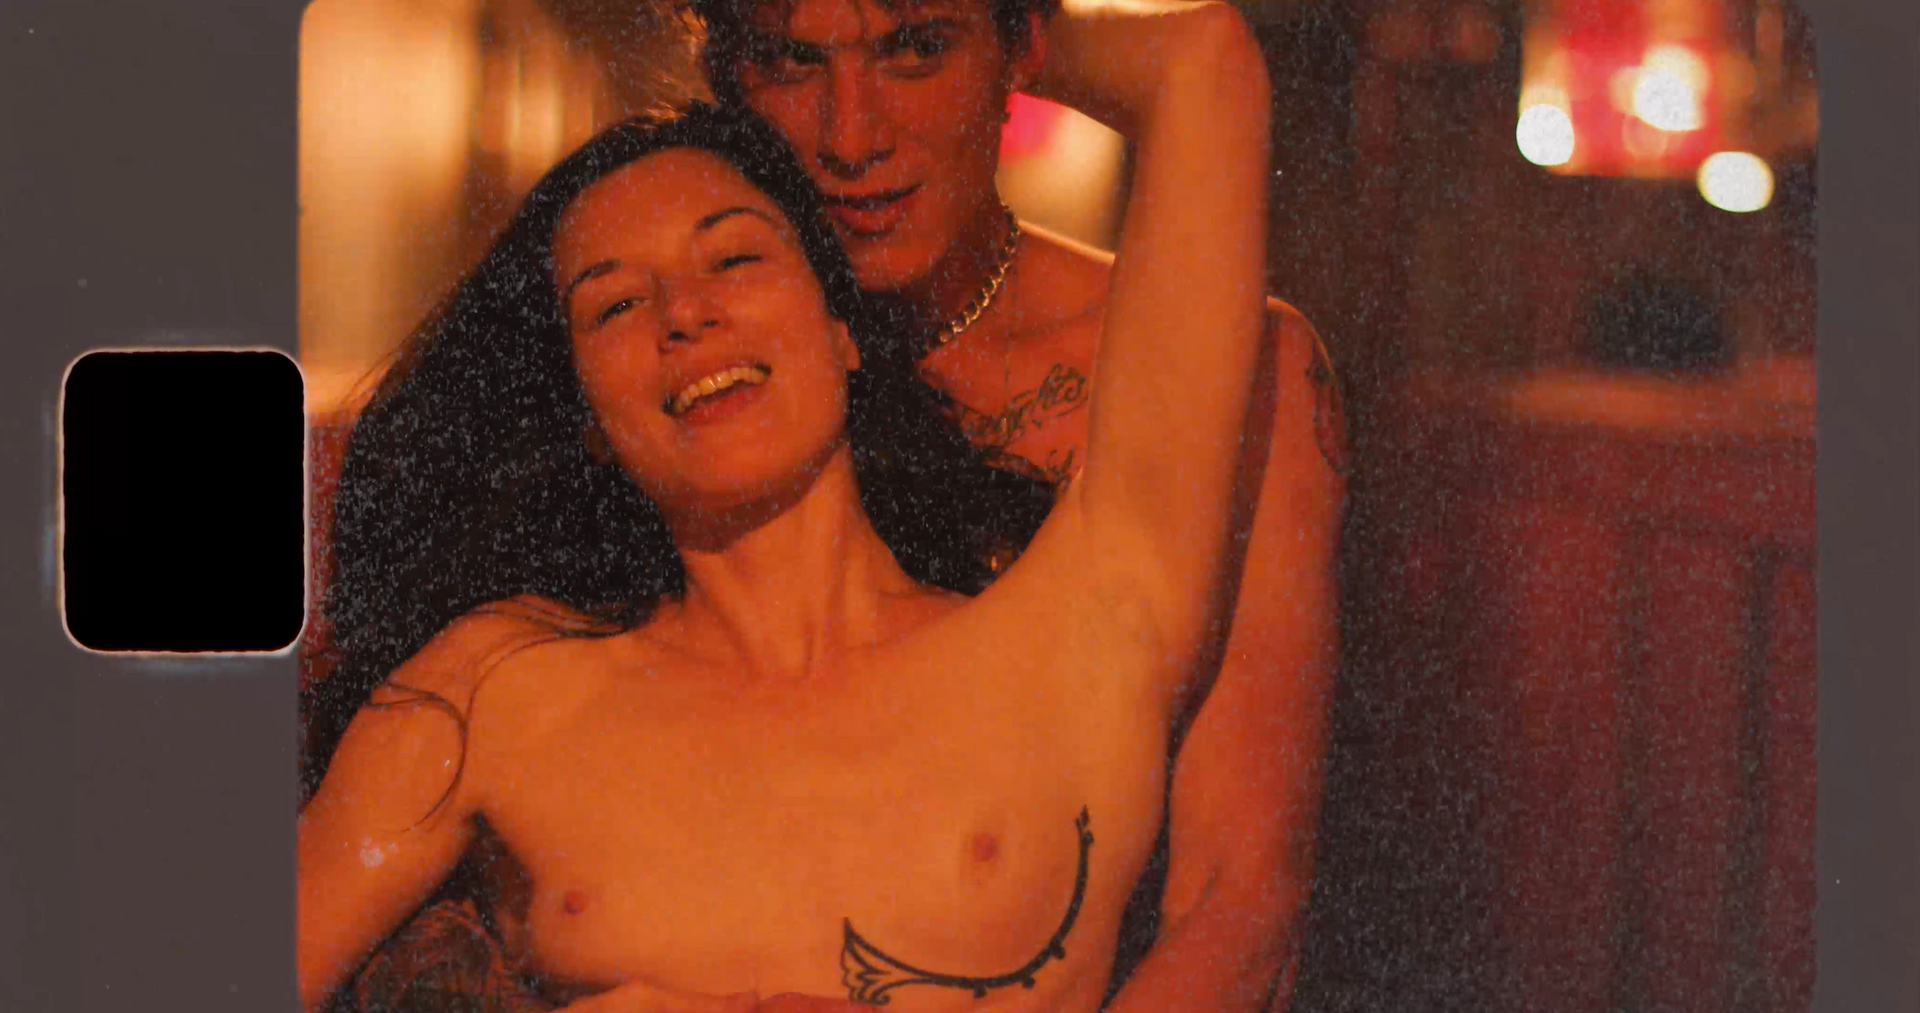 CHARLIE AND STOYA